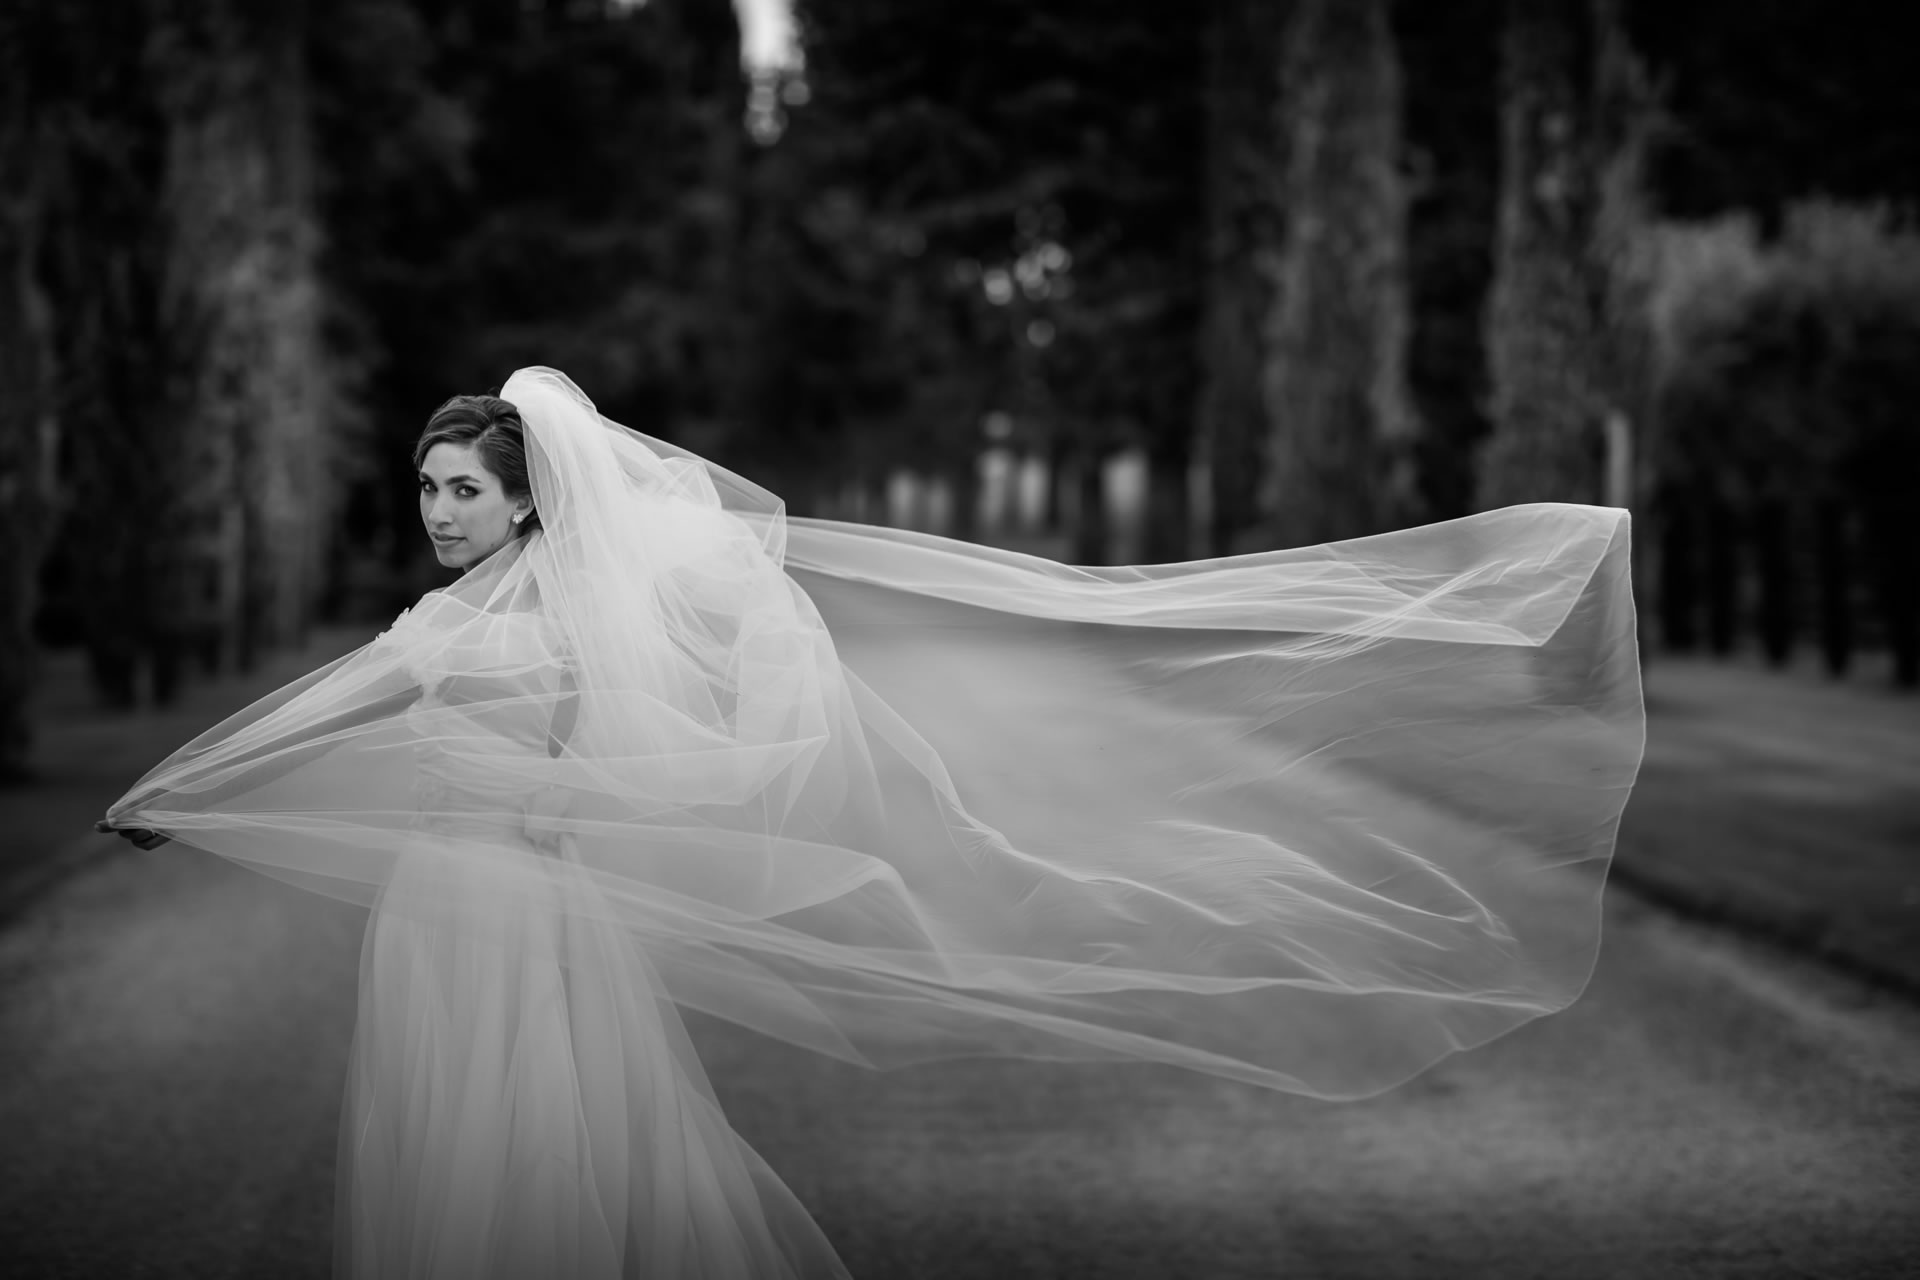 Veil - 33 :: Amazing wedding day at Il Borro :: Luxury wedding photography - 32 :: Veil - 33